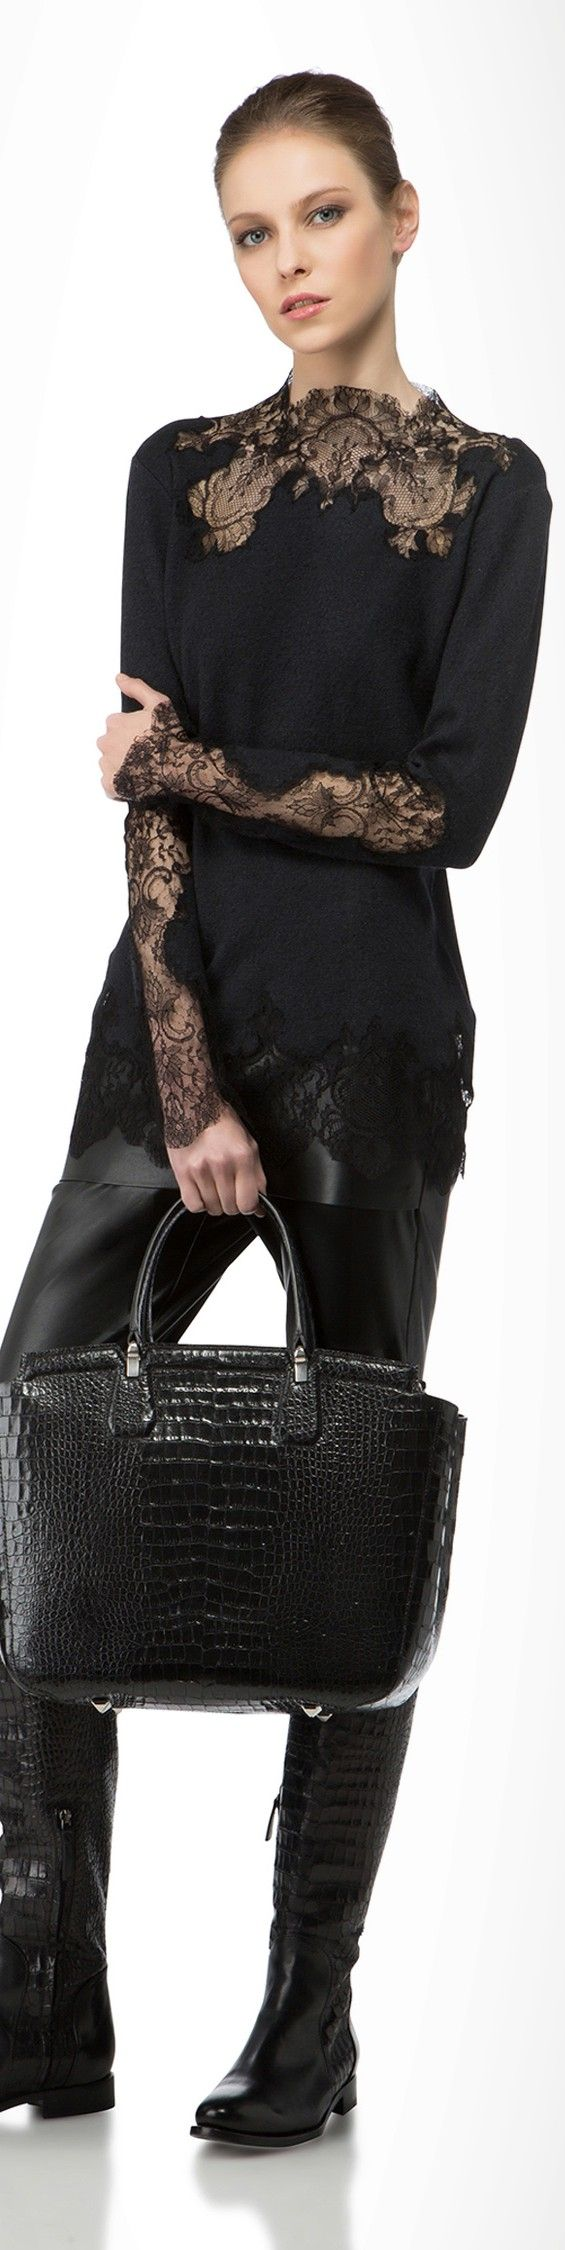 That Top! That Bag! Those Boots! YES